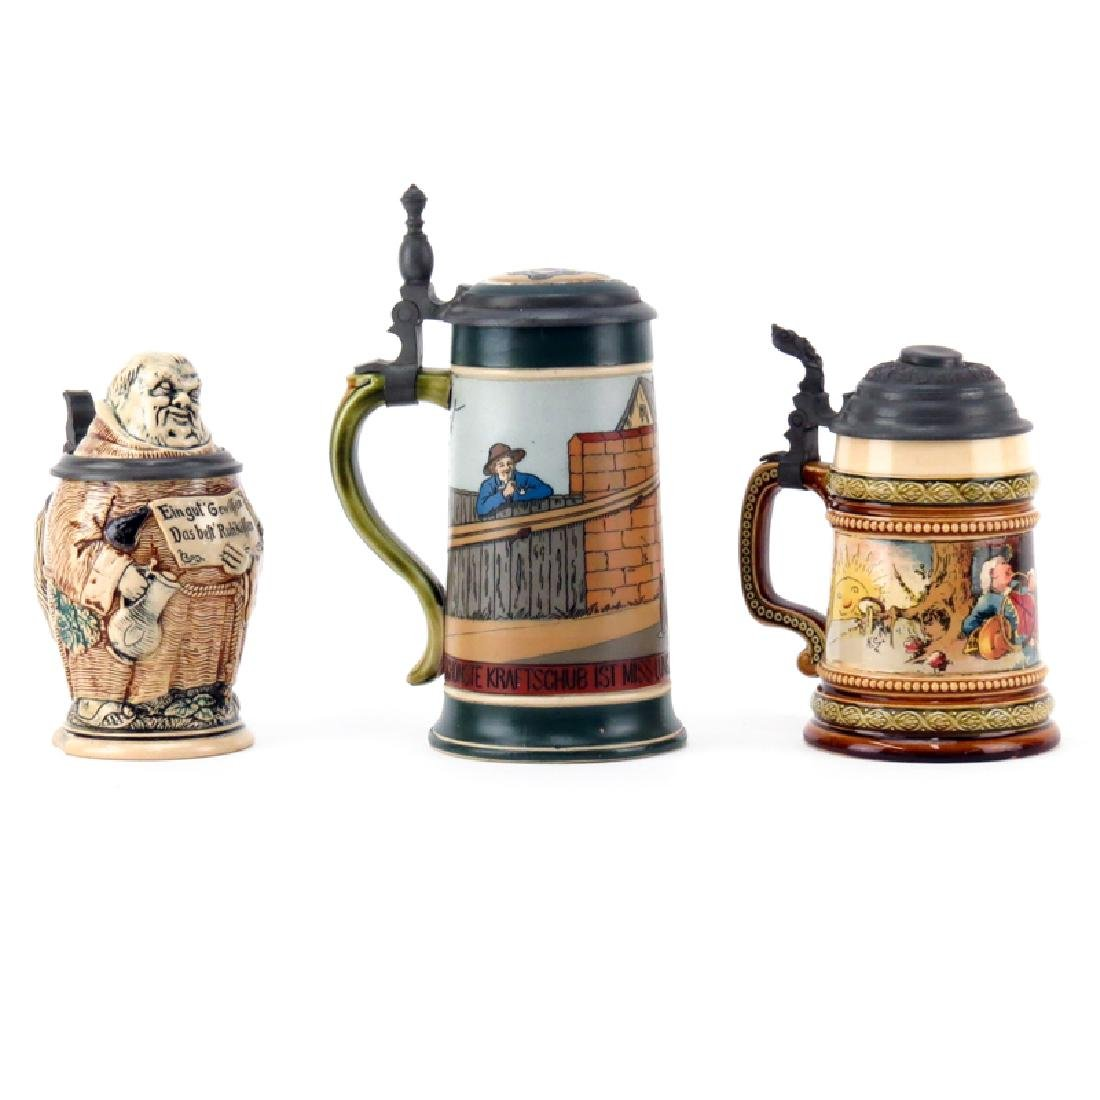 Three (3) Piece Lot of Vintage Steins. Includes 2